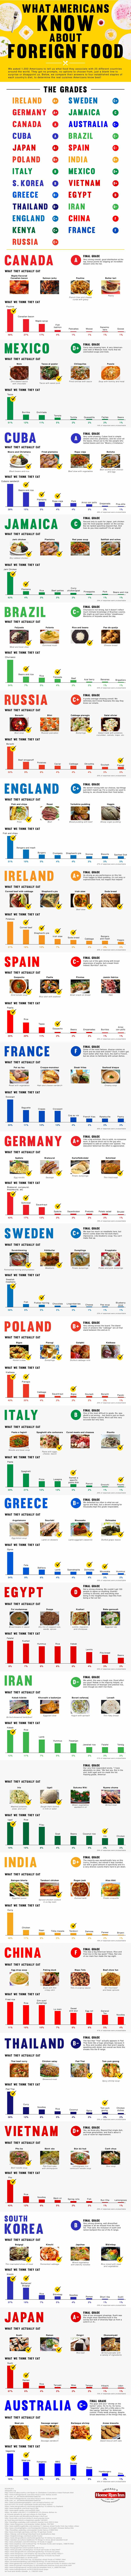 Americans Perception Of Popular Foreign Foods